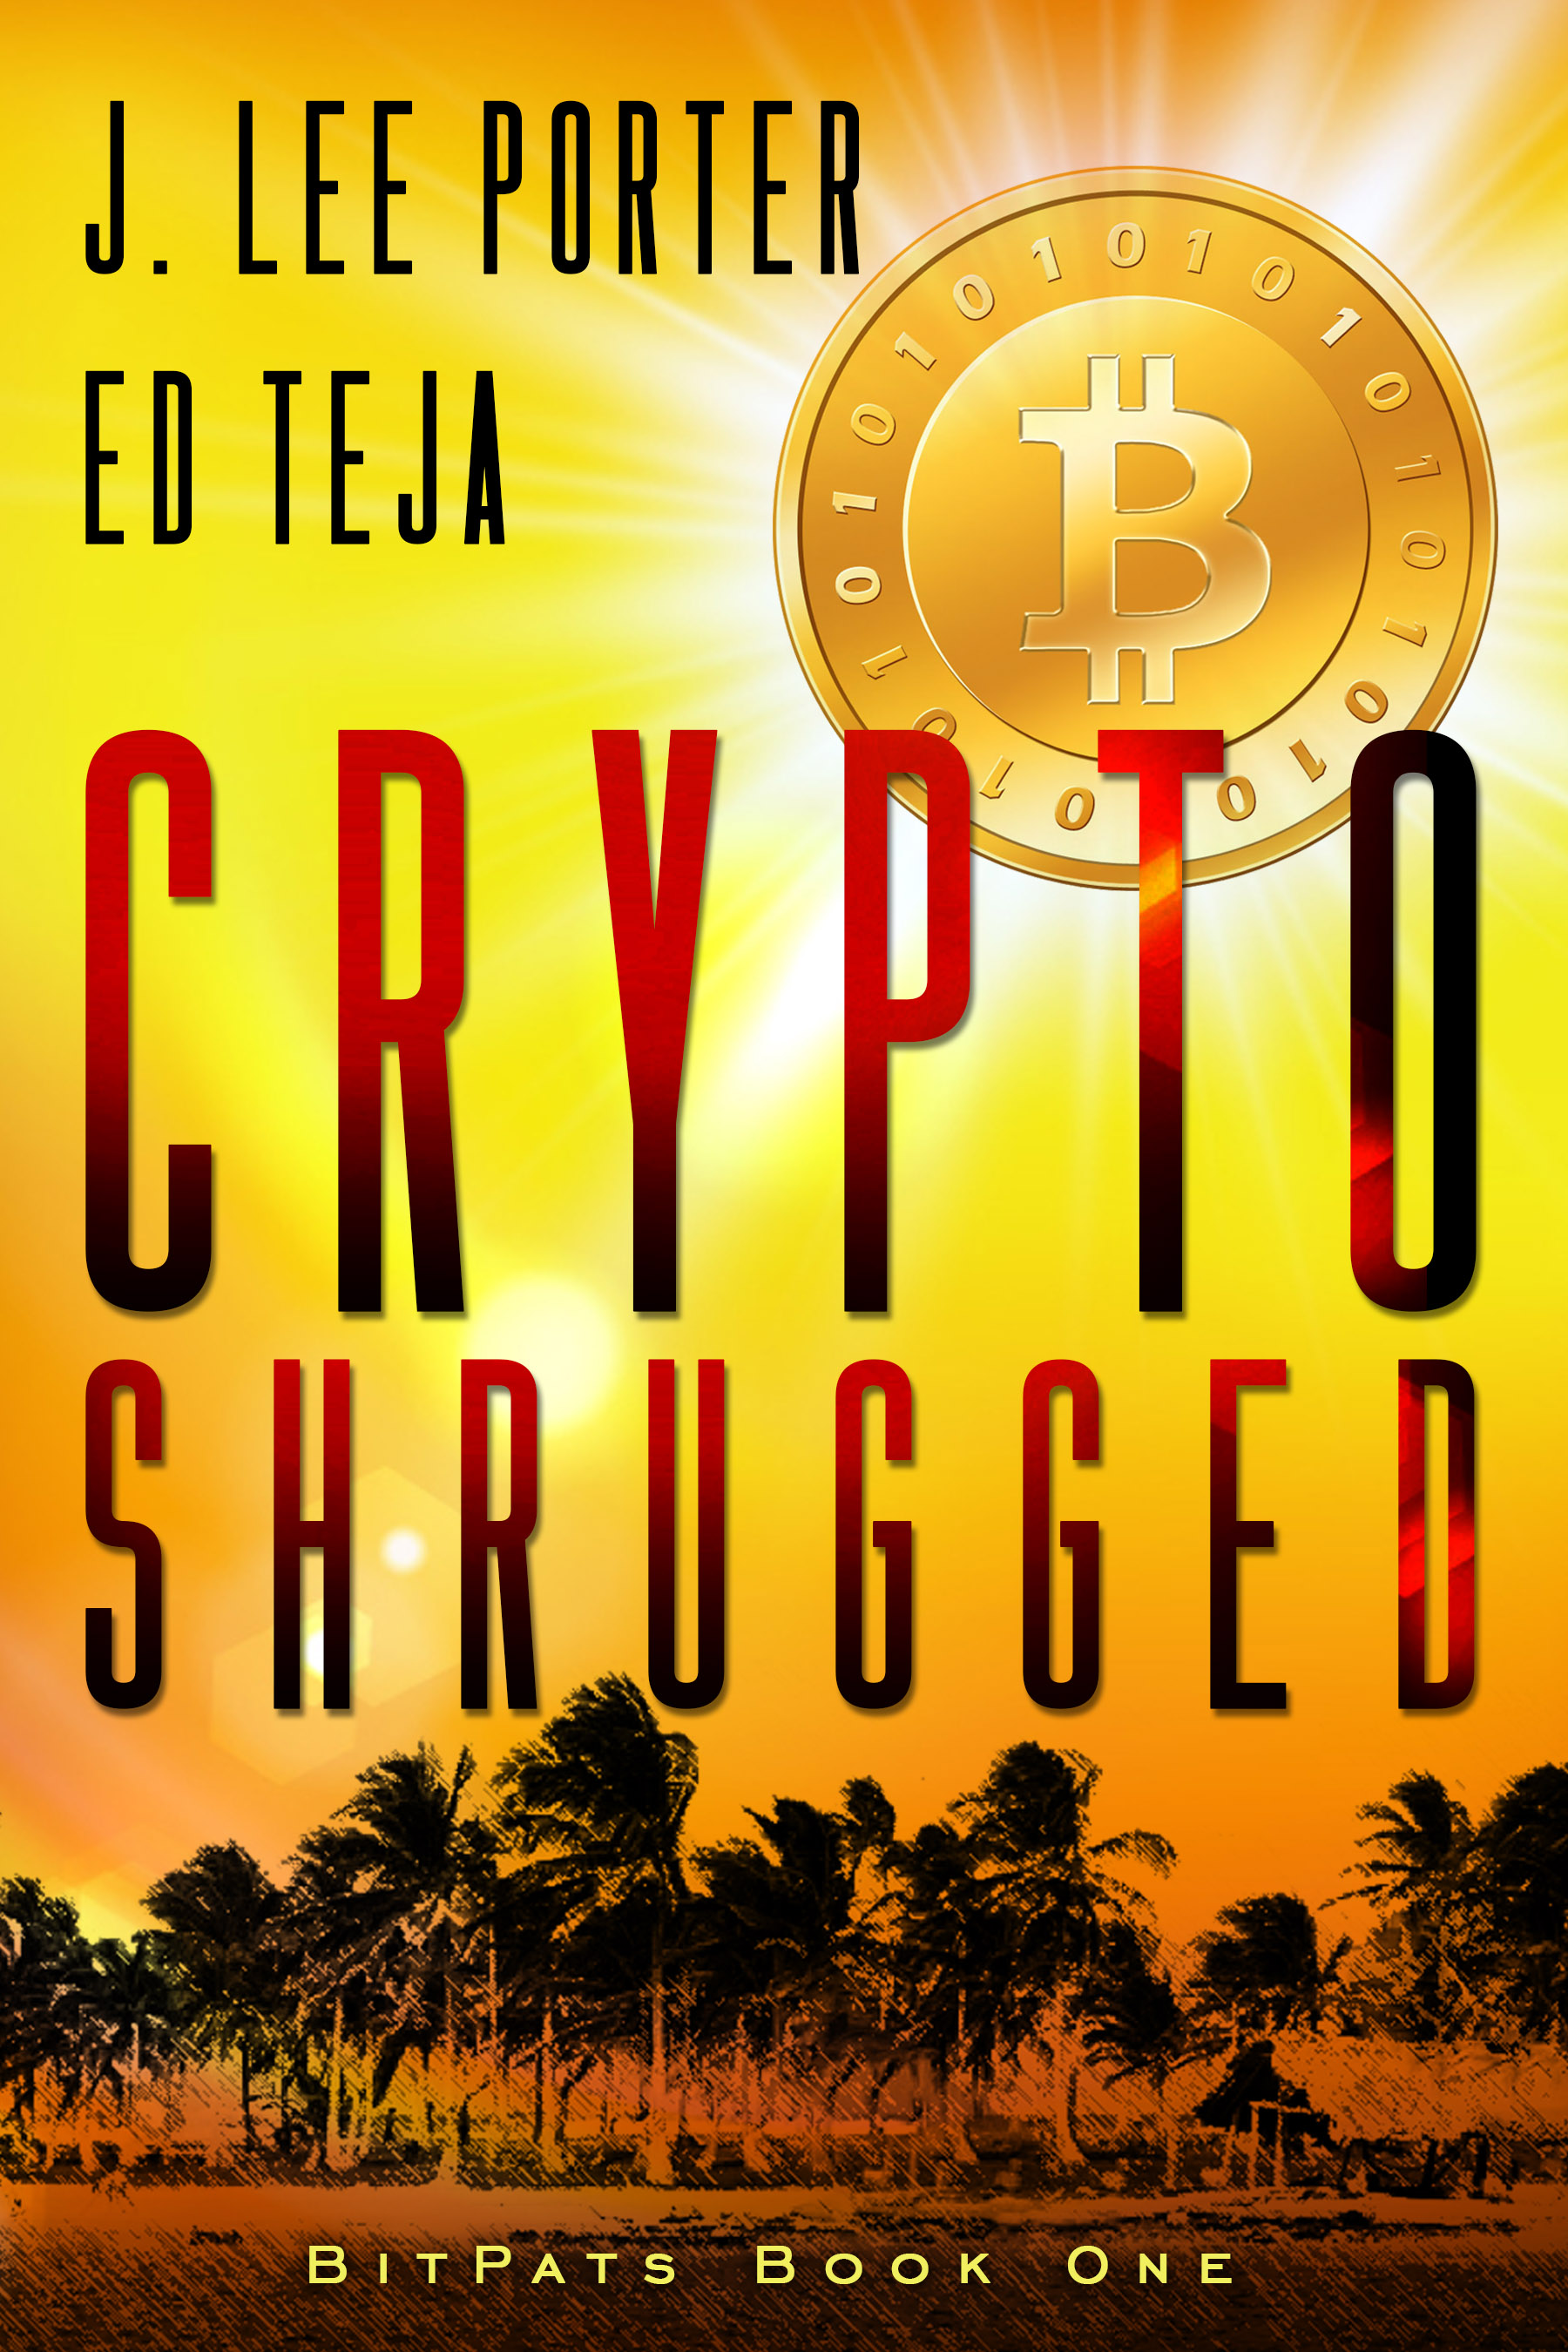 CryptoShrugged_V1.jpg